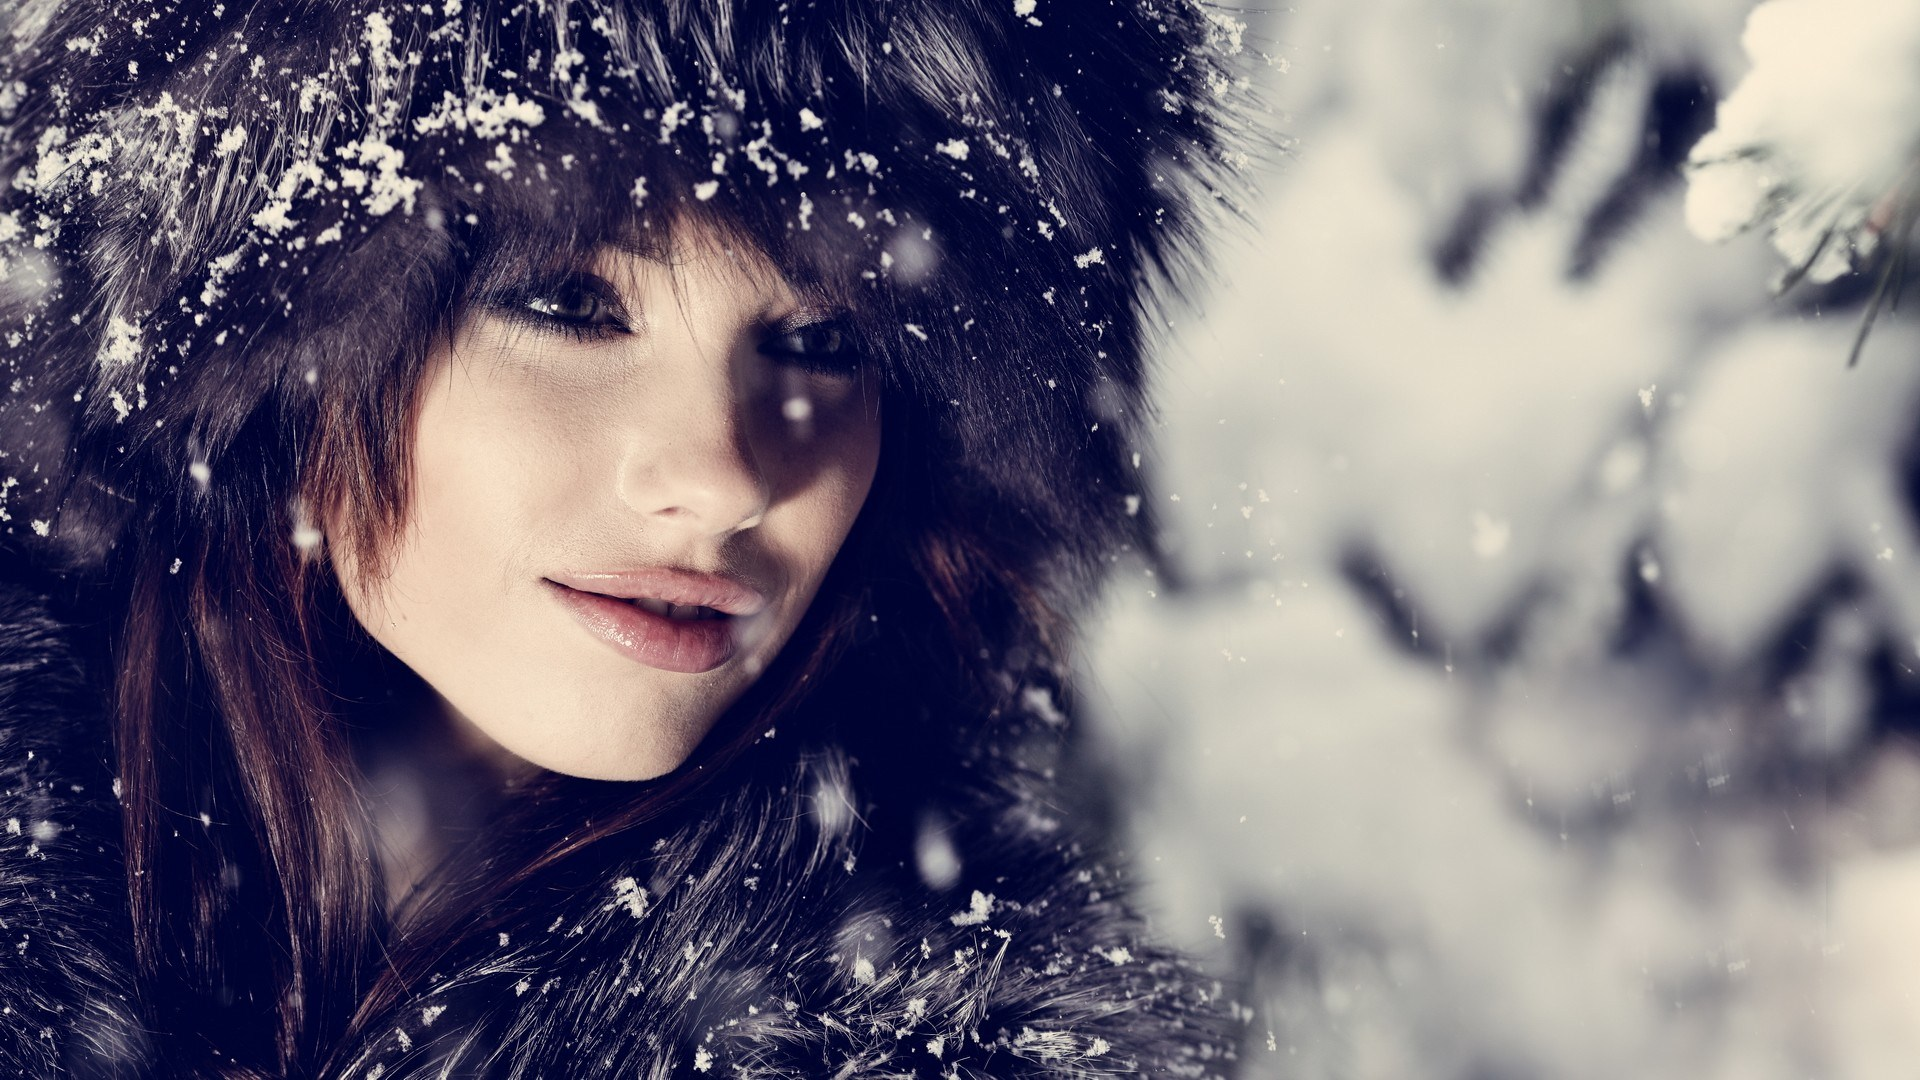 Girl in Snow Desktop Wallpaper HD Download